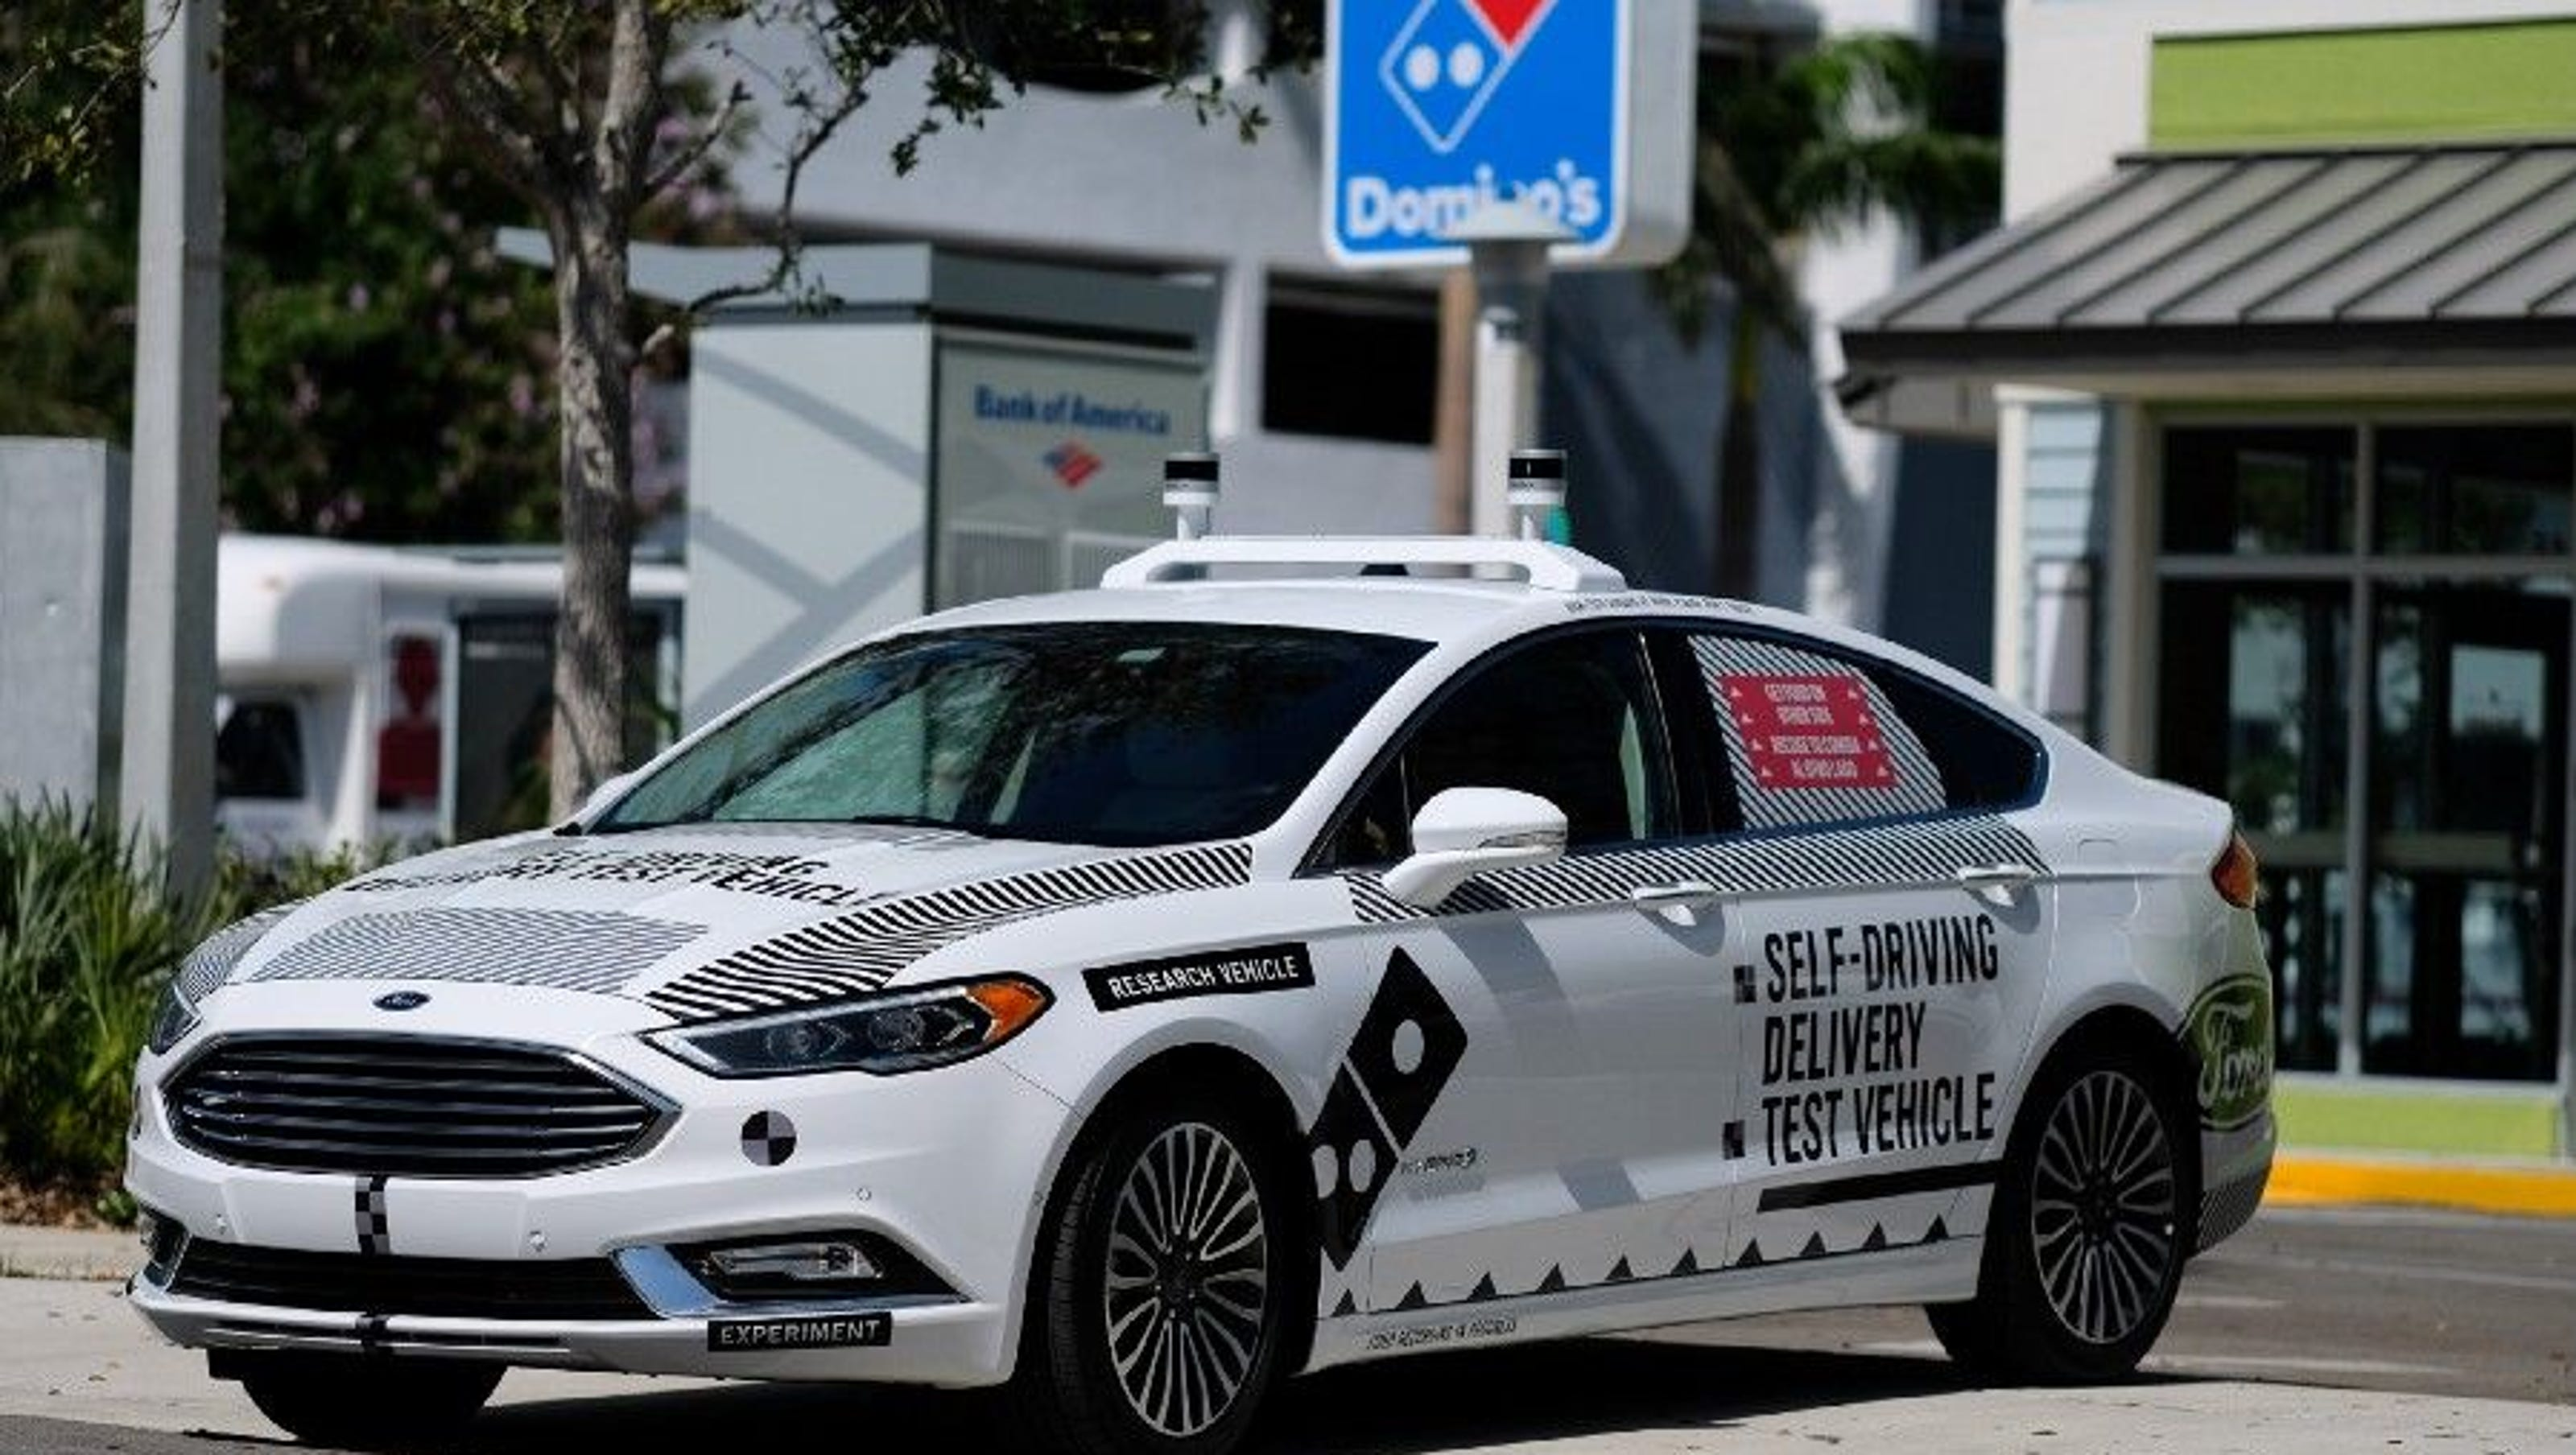 Ford picks miami for self driving vehicle test in dominos postmates partnership